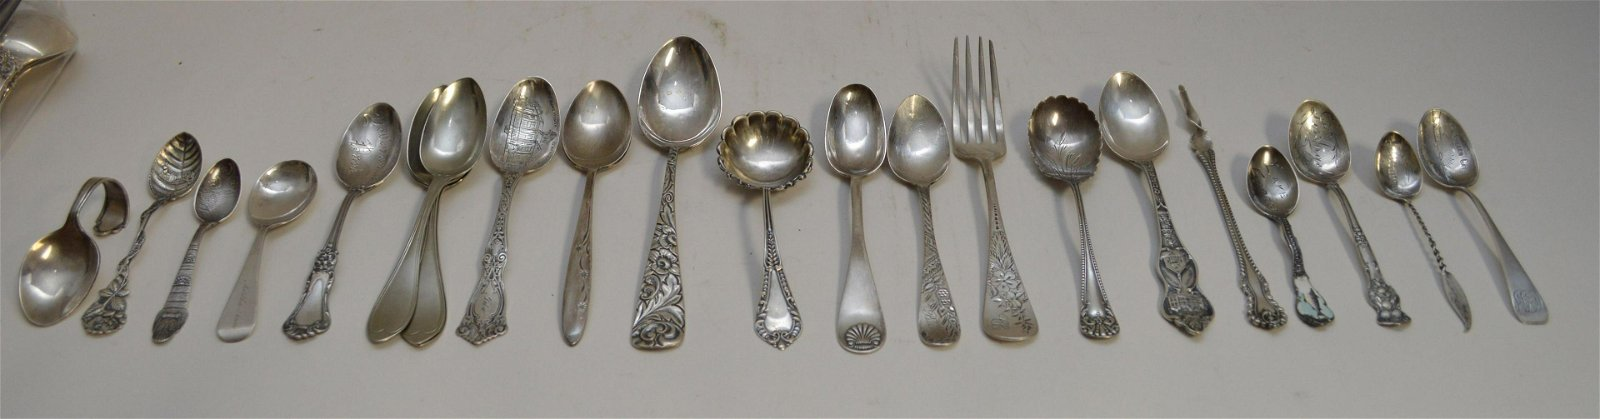 15 Pieces Assorted Sterling Silver Flatware.  Largest